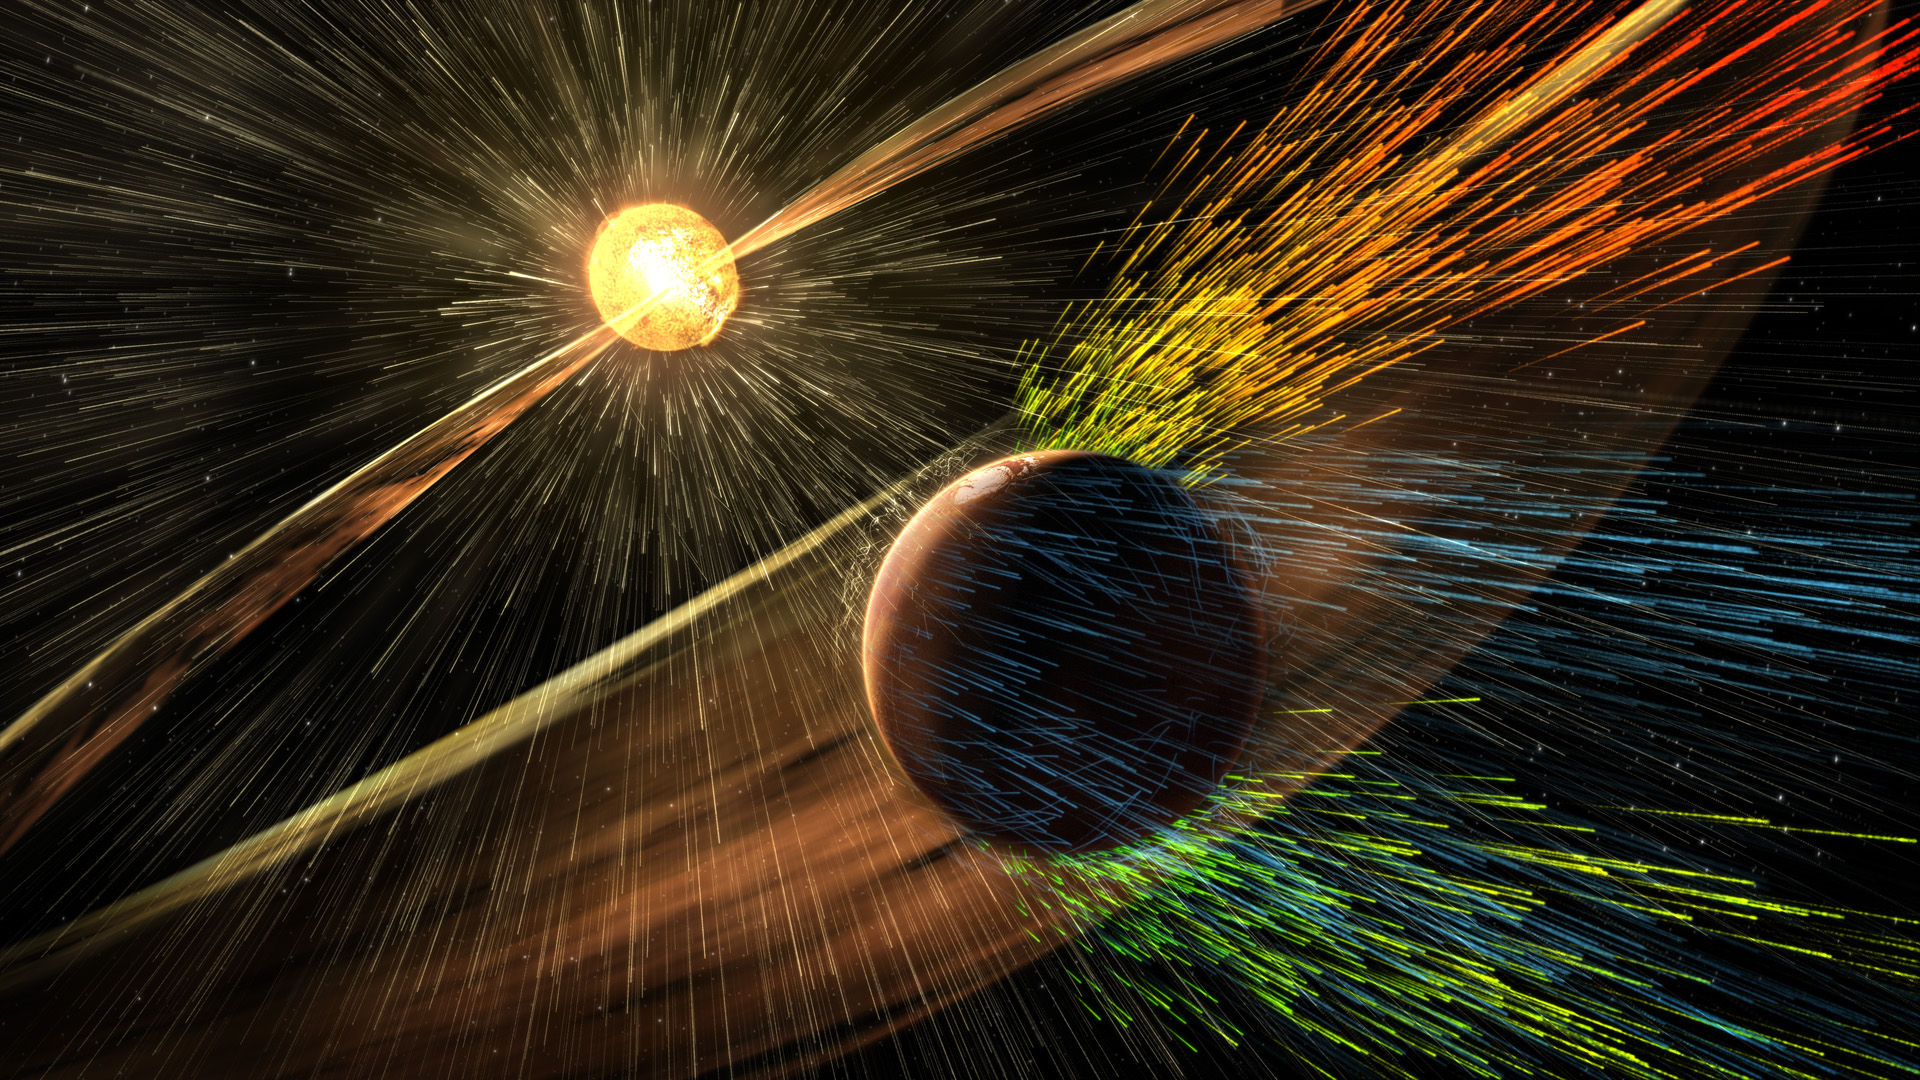 A NASA mission reveals how gases in Mars' upper atmosphere are stripped away by the sun's solar wind. Image credit: NASA's Scientific Visualization Studio and the MAVEN Science Team